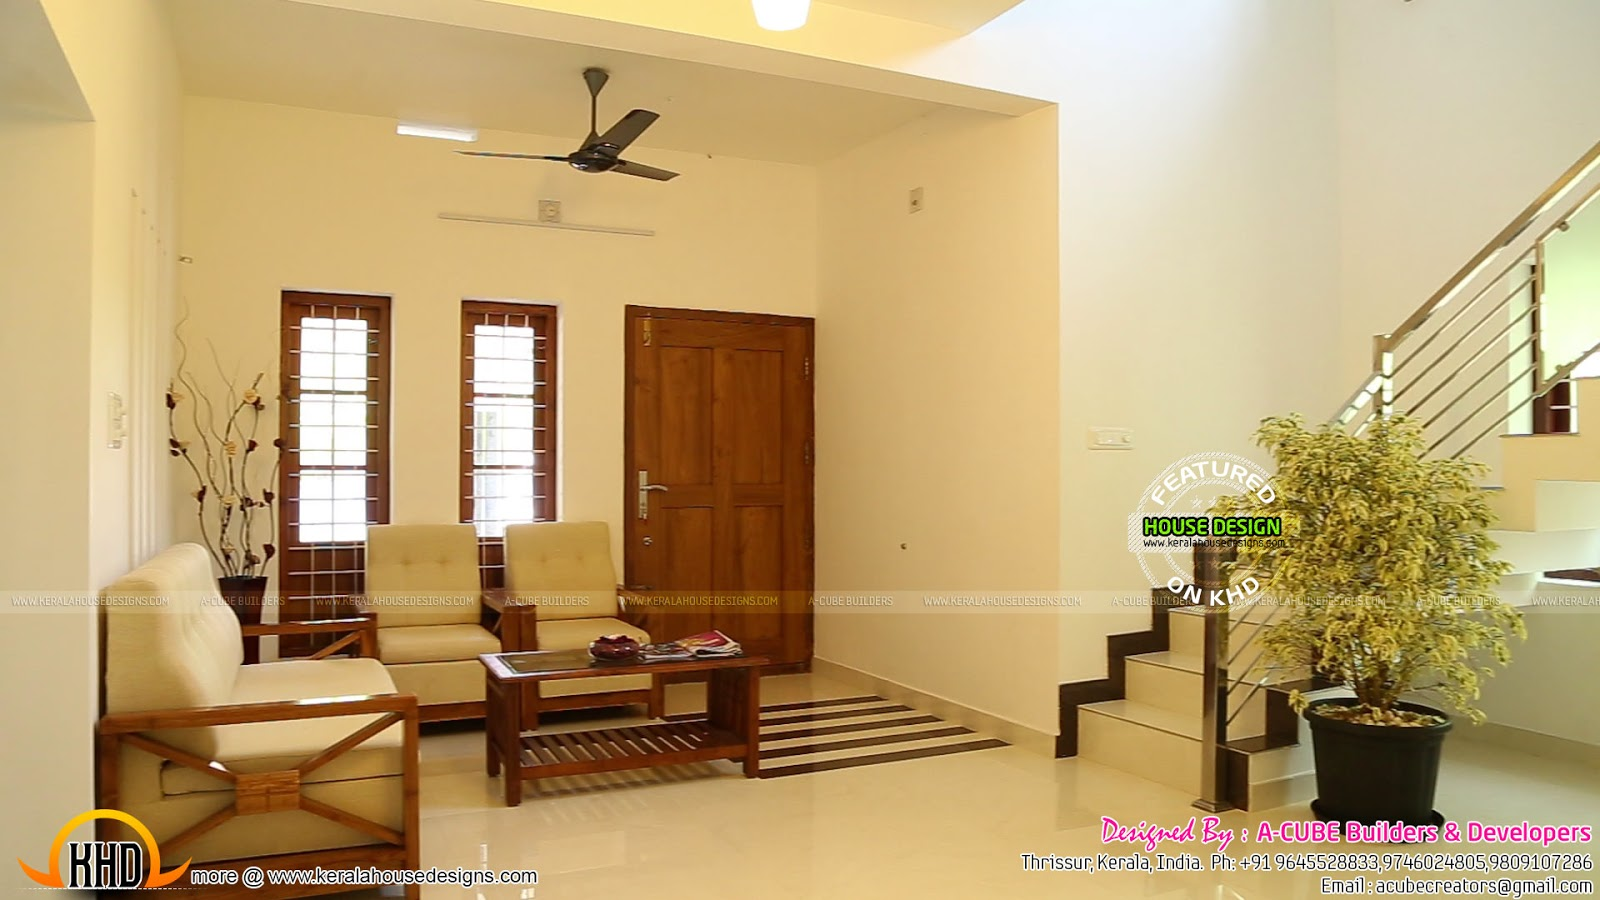 New House Plans for 2016 starts here - Kerala home design ...